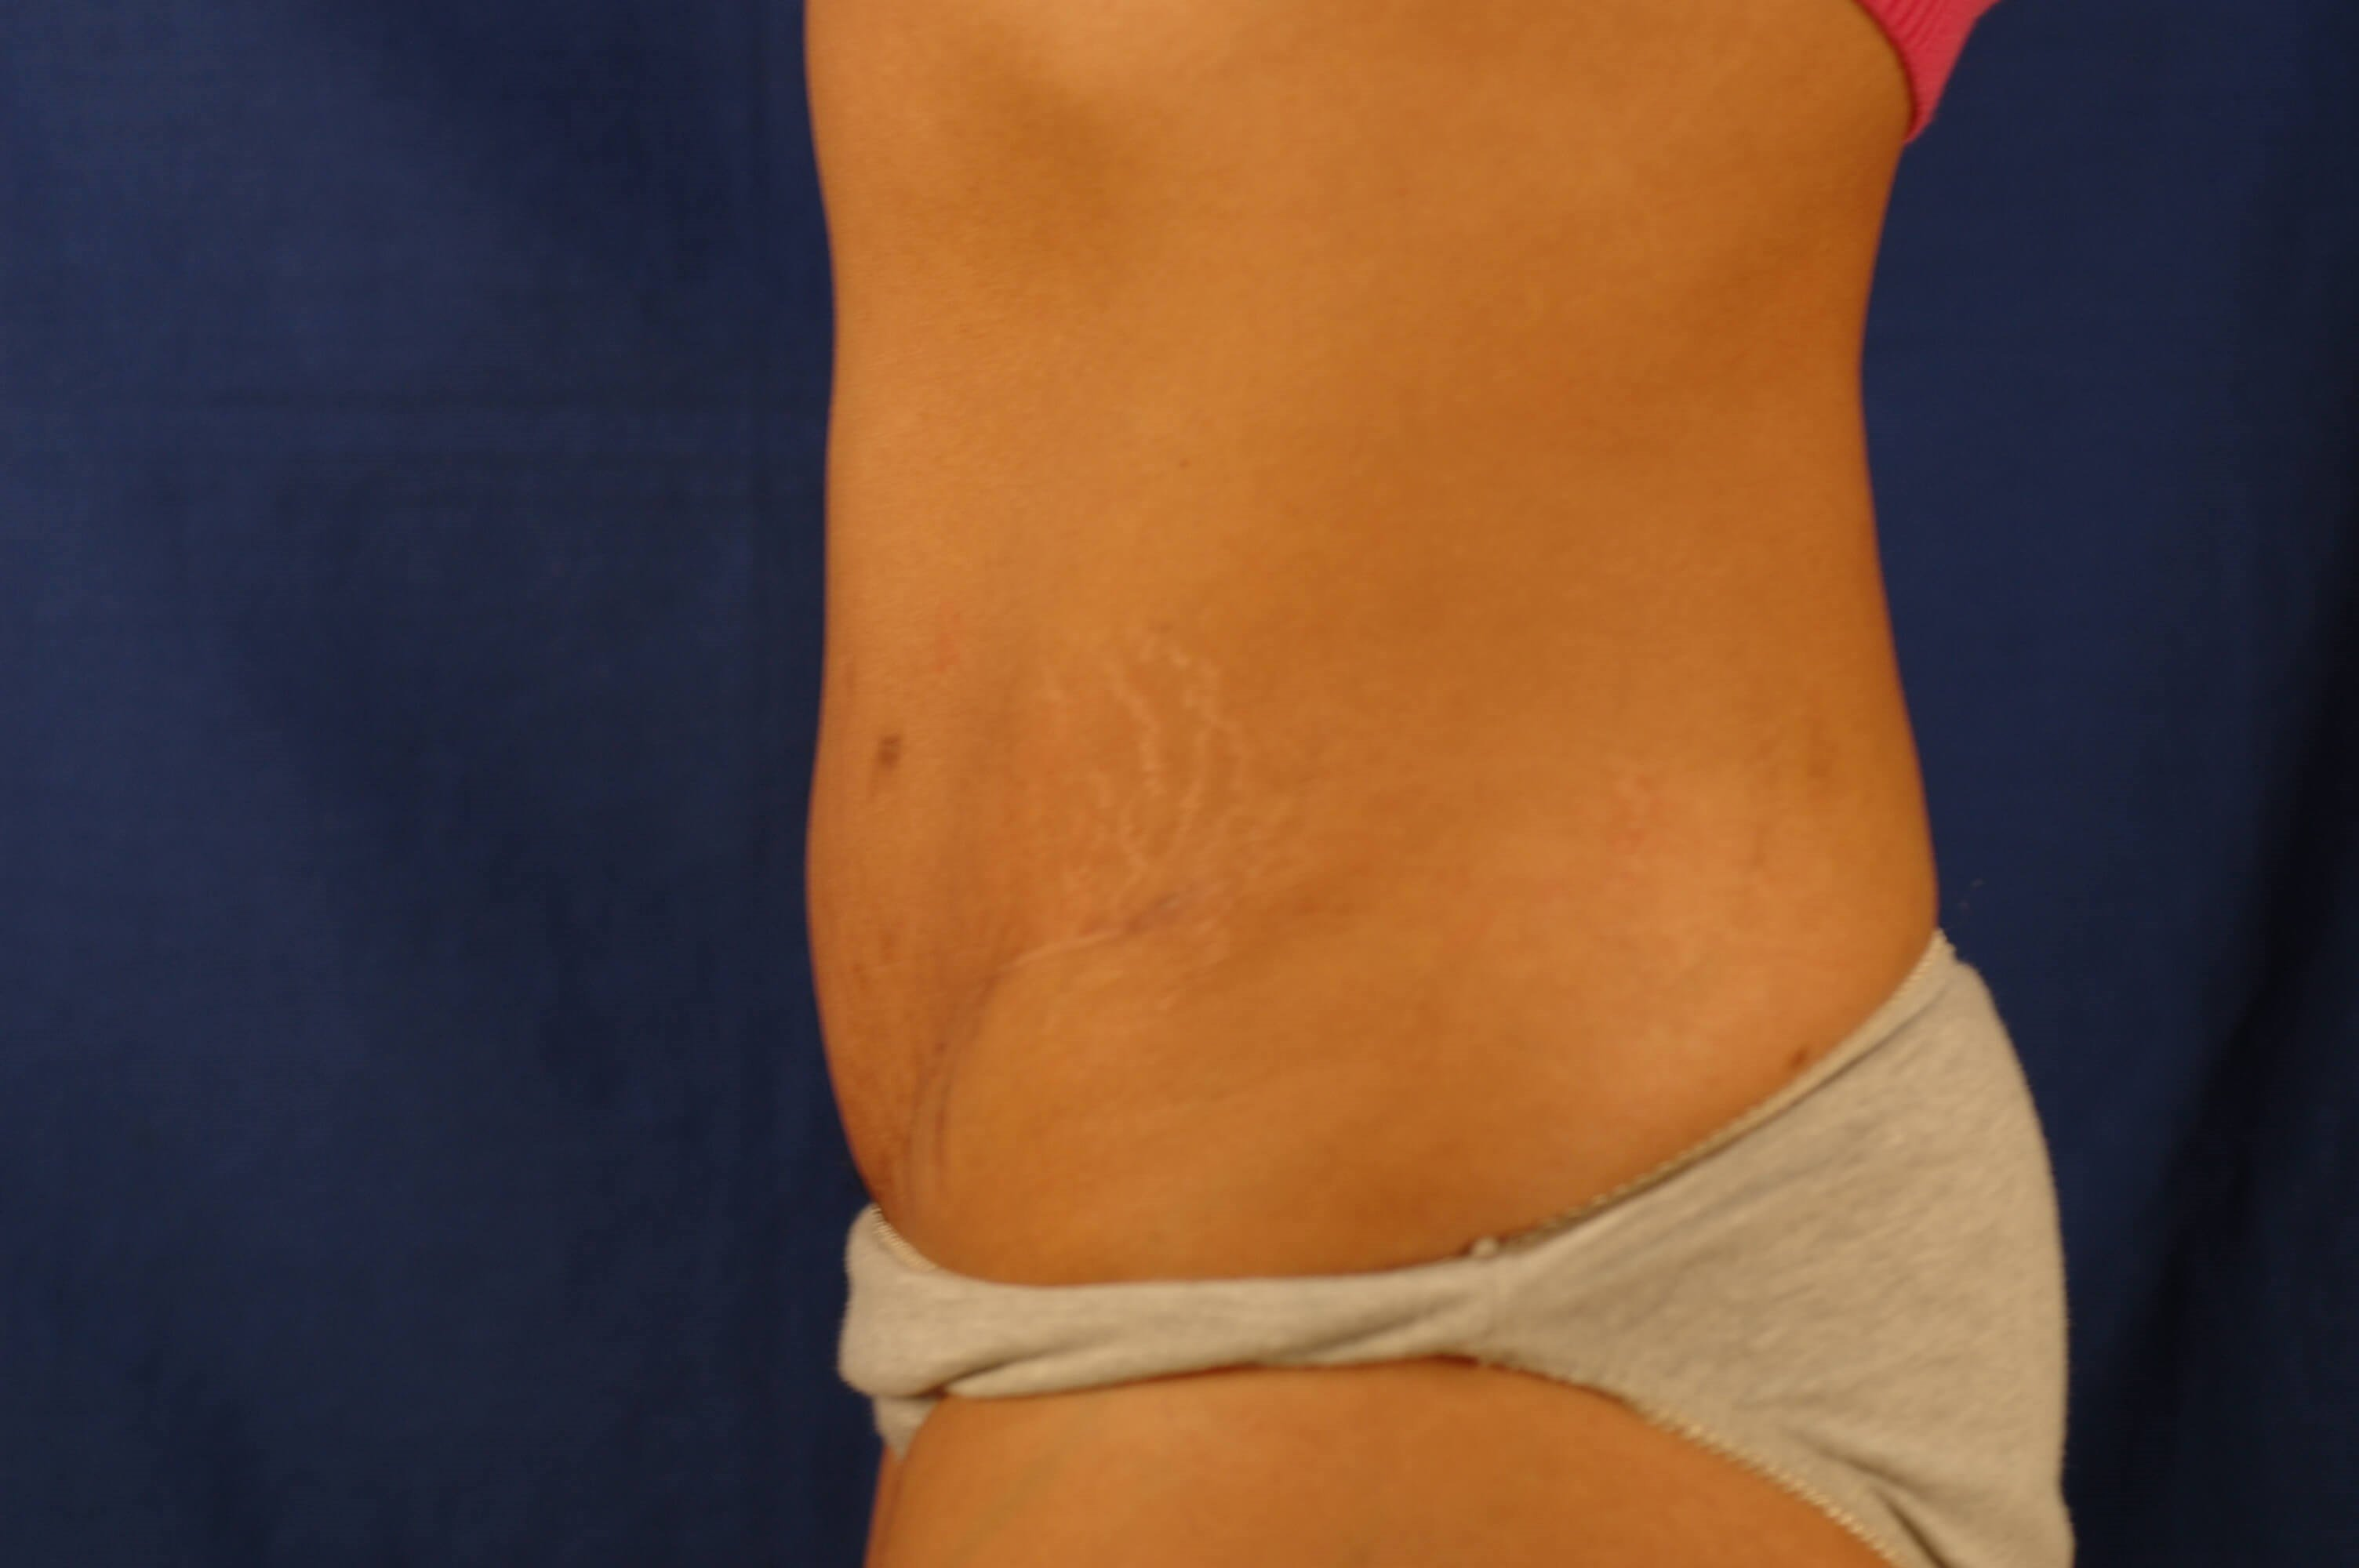 Newport Beach Tummy Tuck After Side View